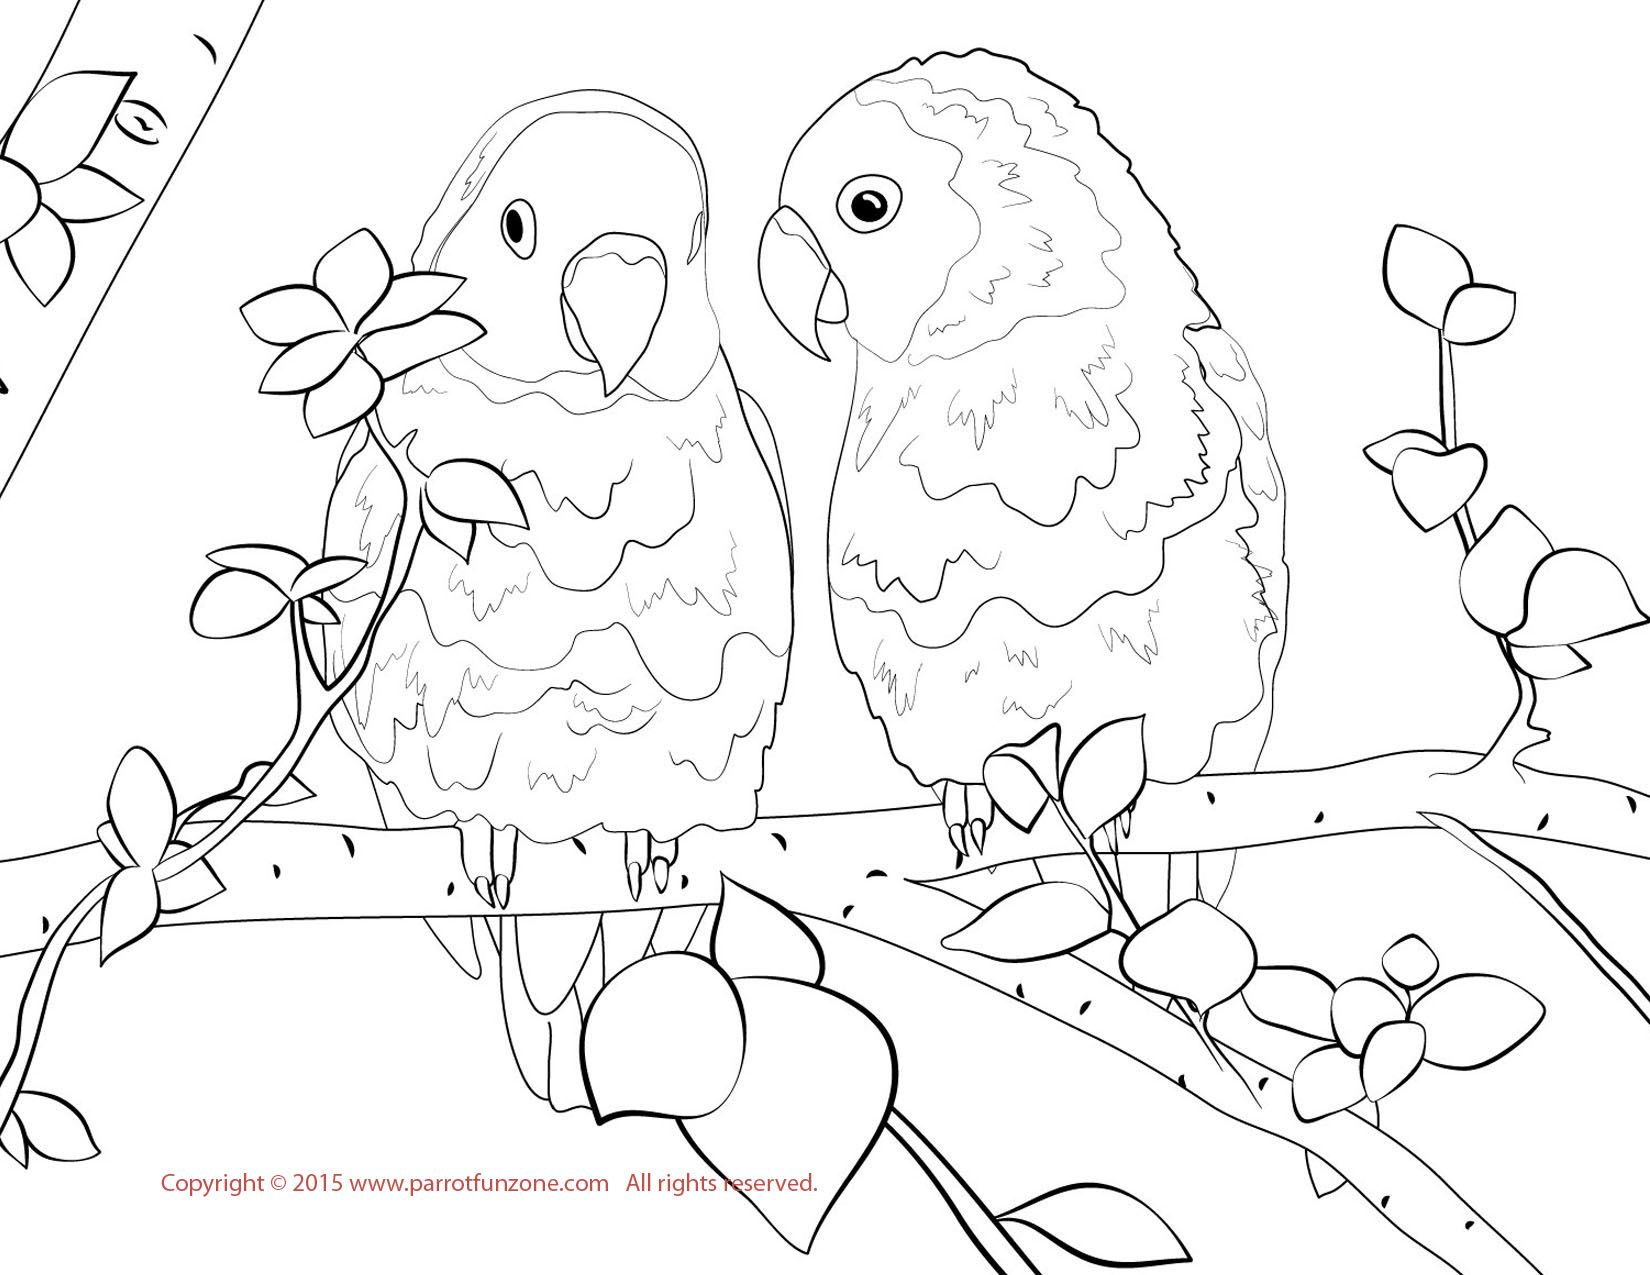 Lovebird Coloring Page Love Coloring Pages Bird Coloring Pages Coloring Pages